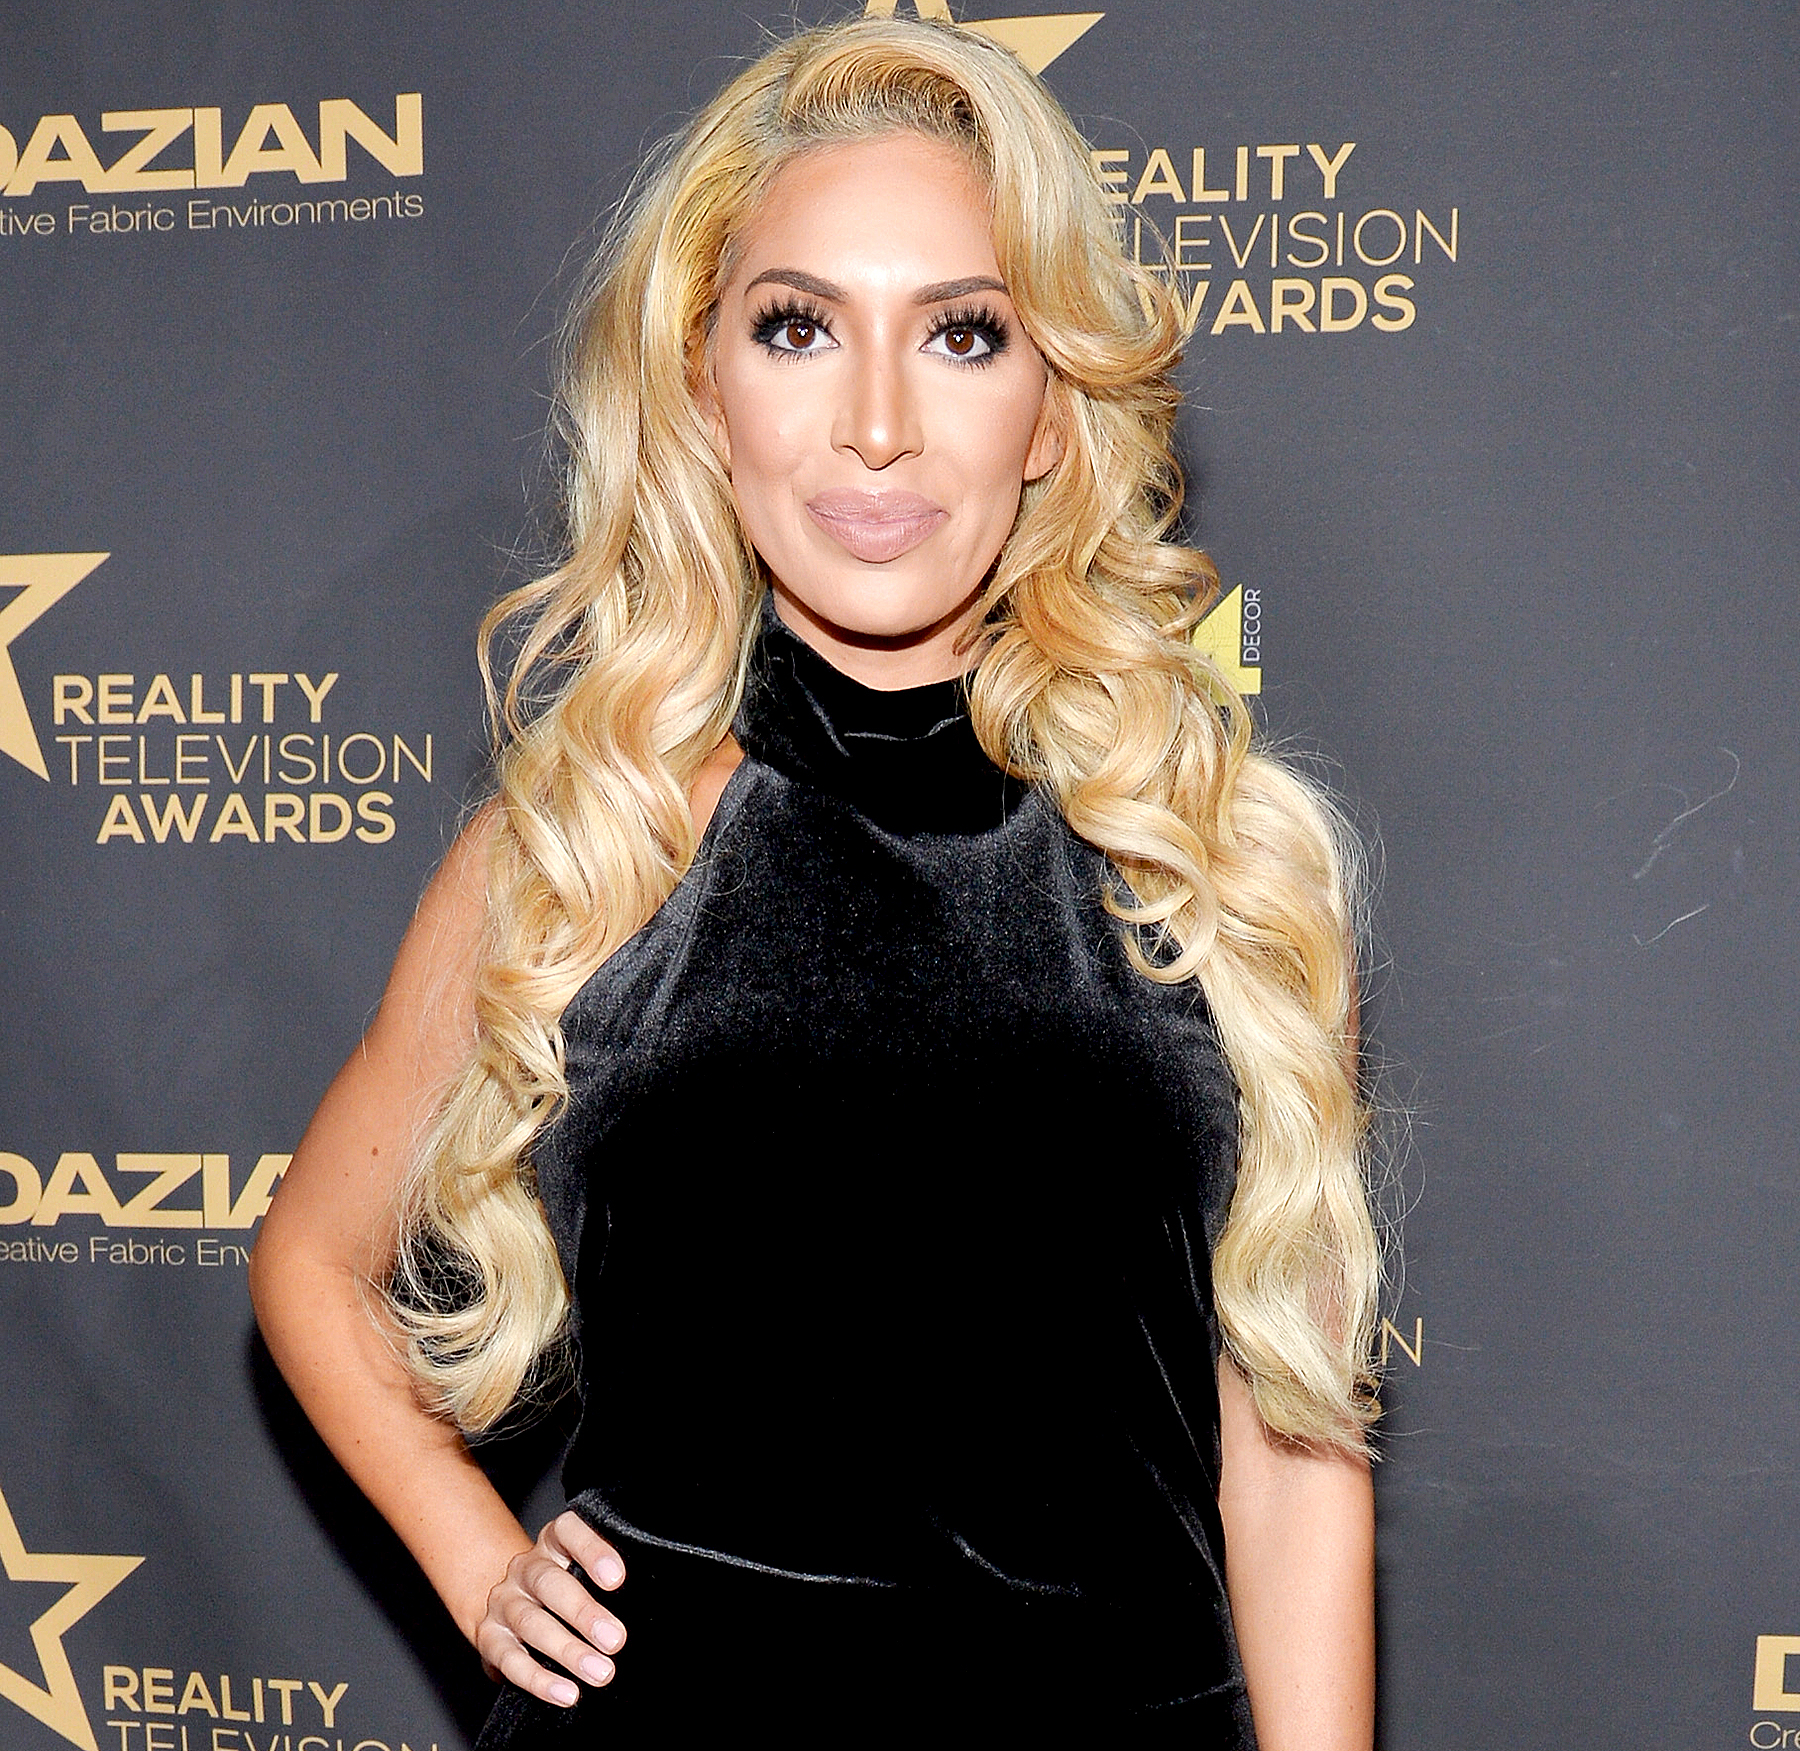 Farrah Abraham atttends the 4th Annual Reality TV Awards at Avalon on November 2, 2016 in Hollywood, California.